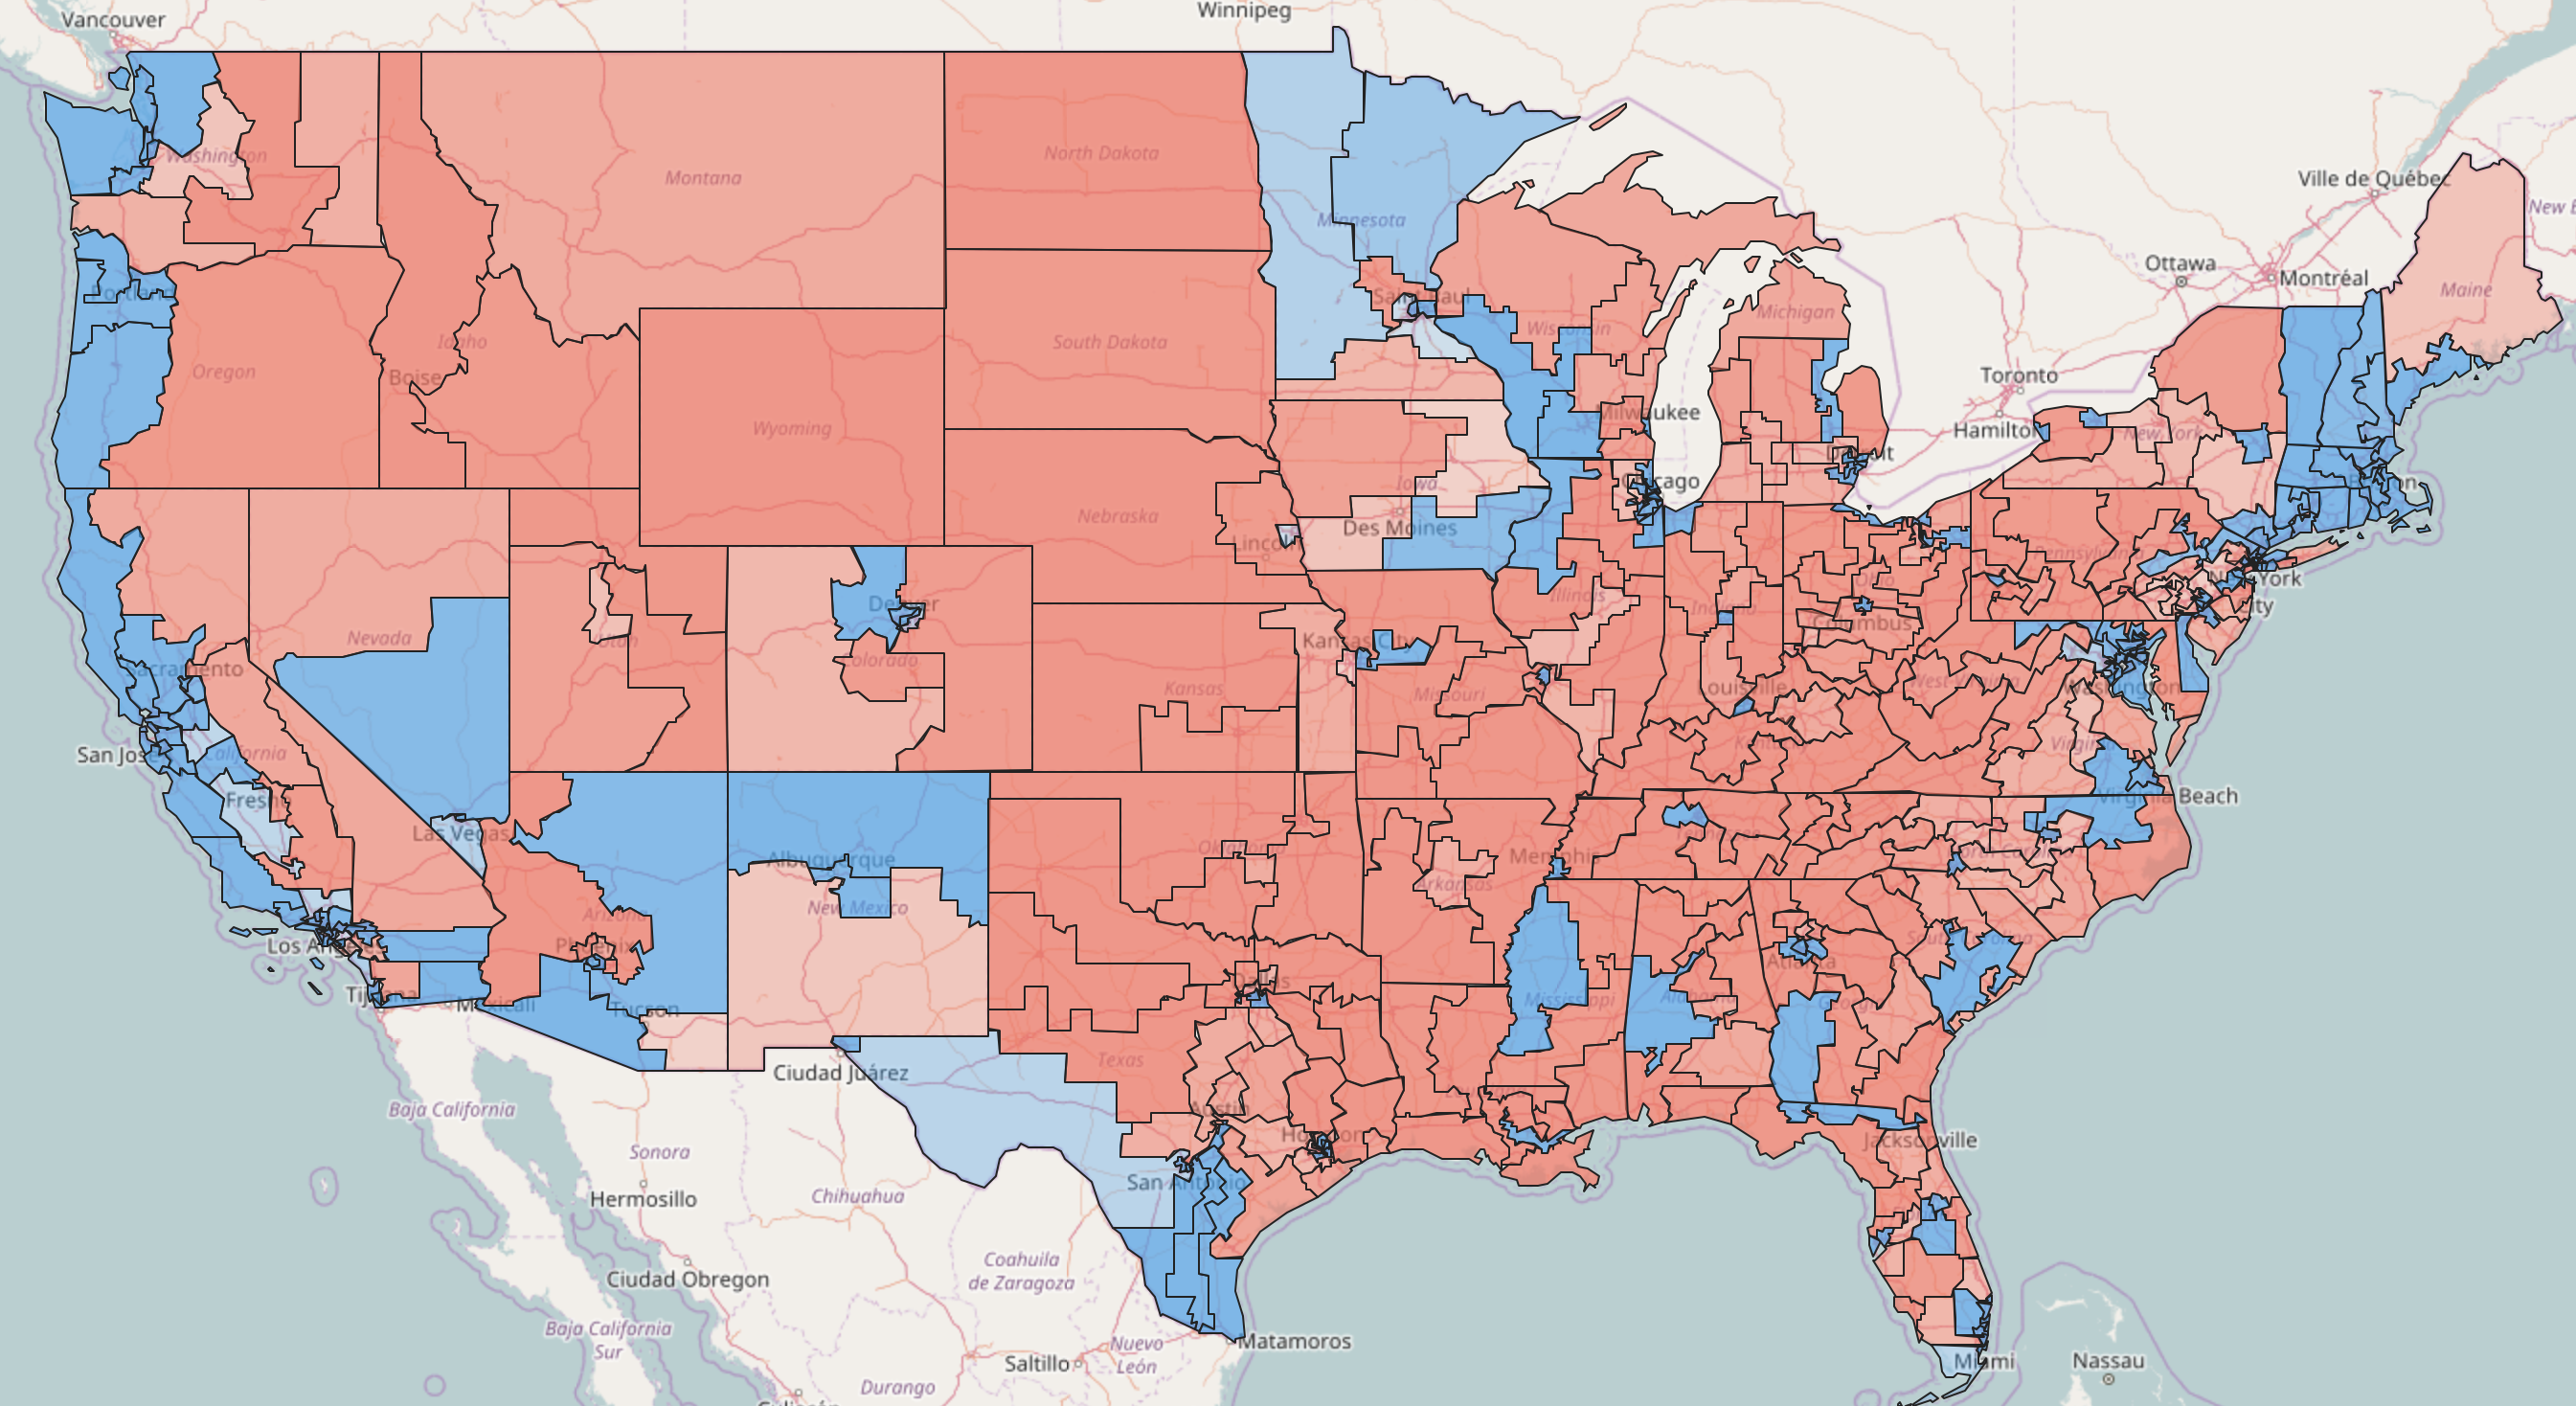 Democrats  Gerrymandering Problem Is Really Bad Vox - Political map 2018 us house